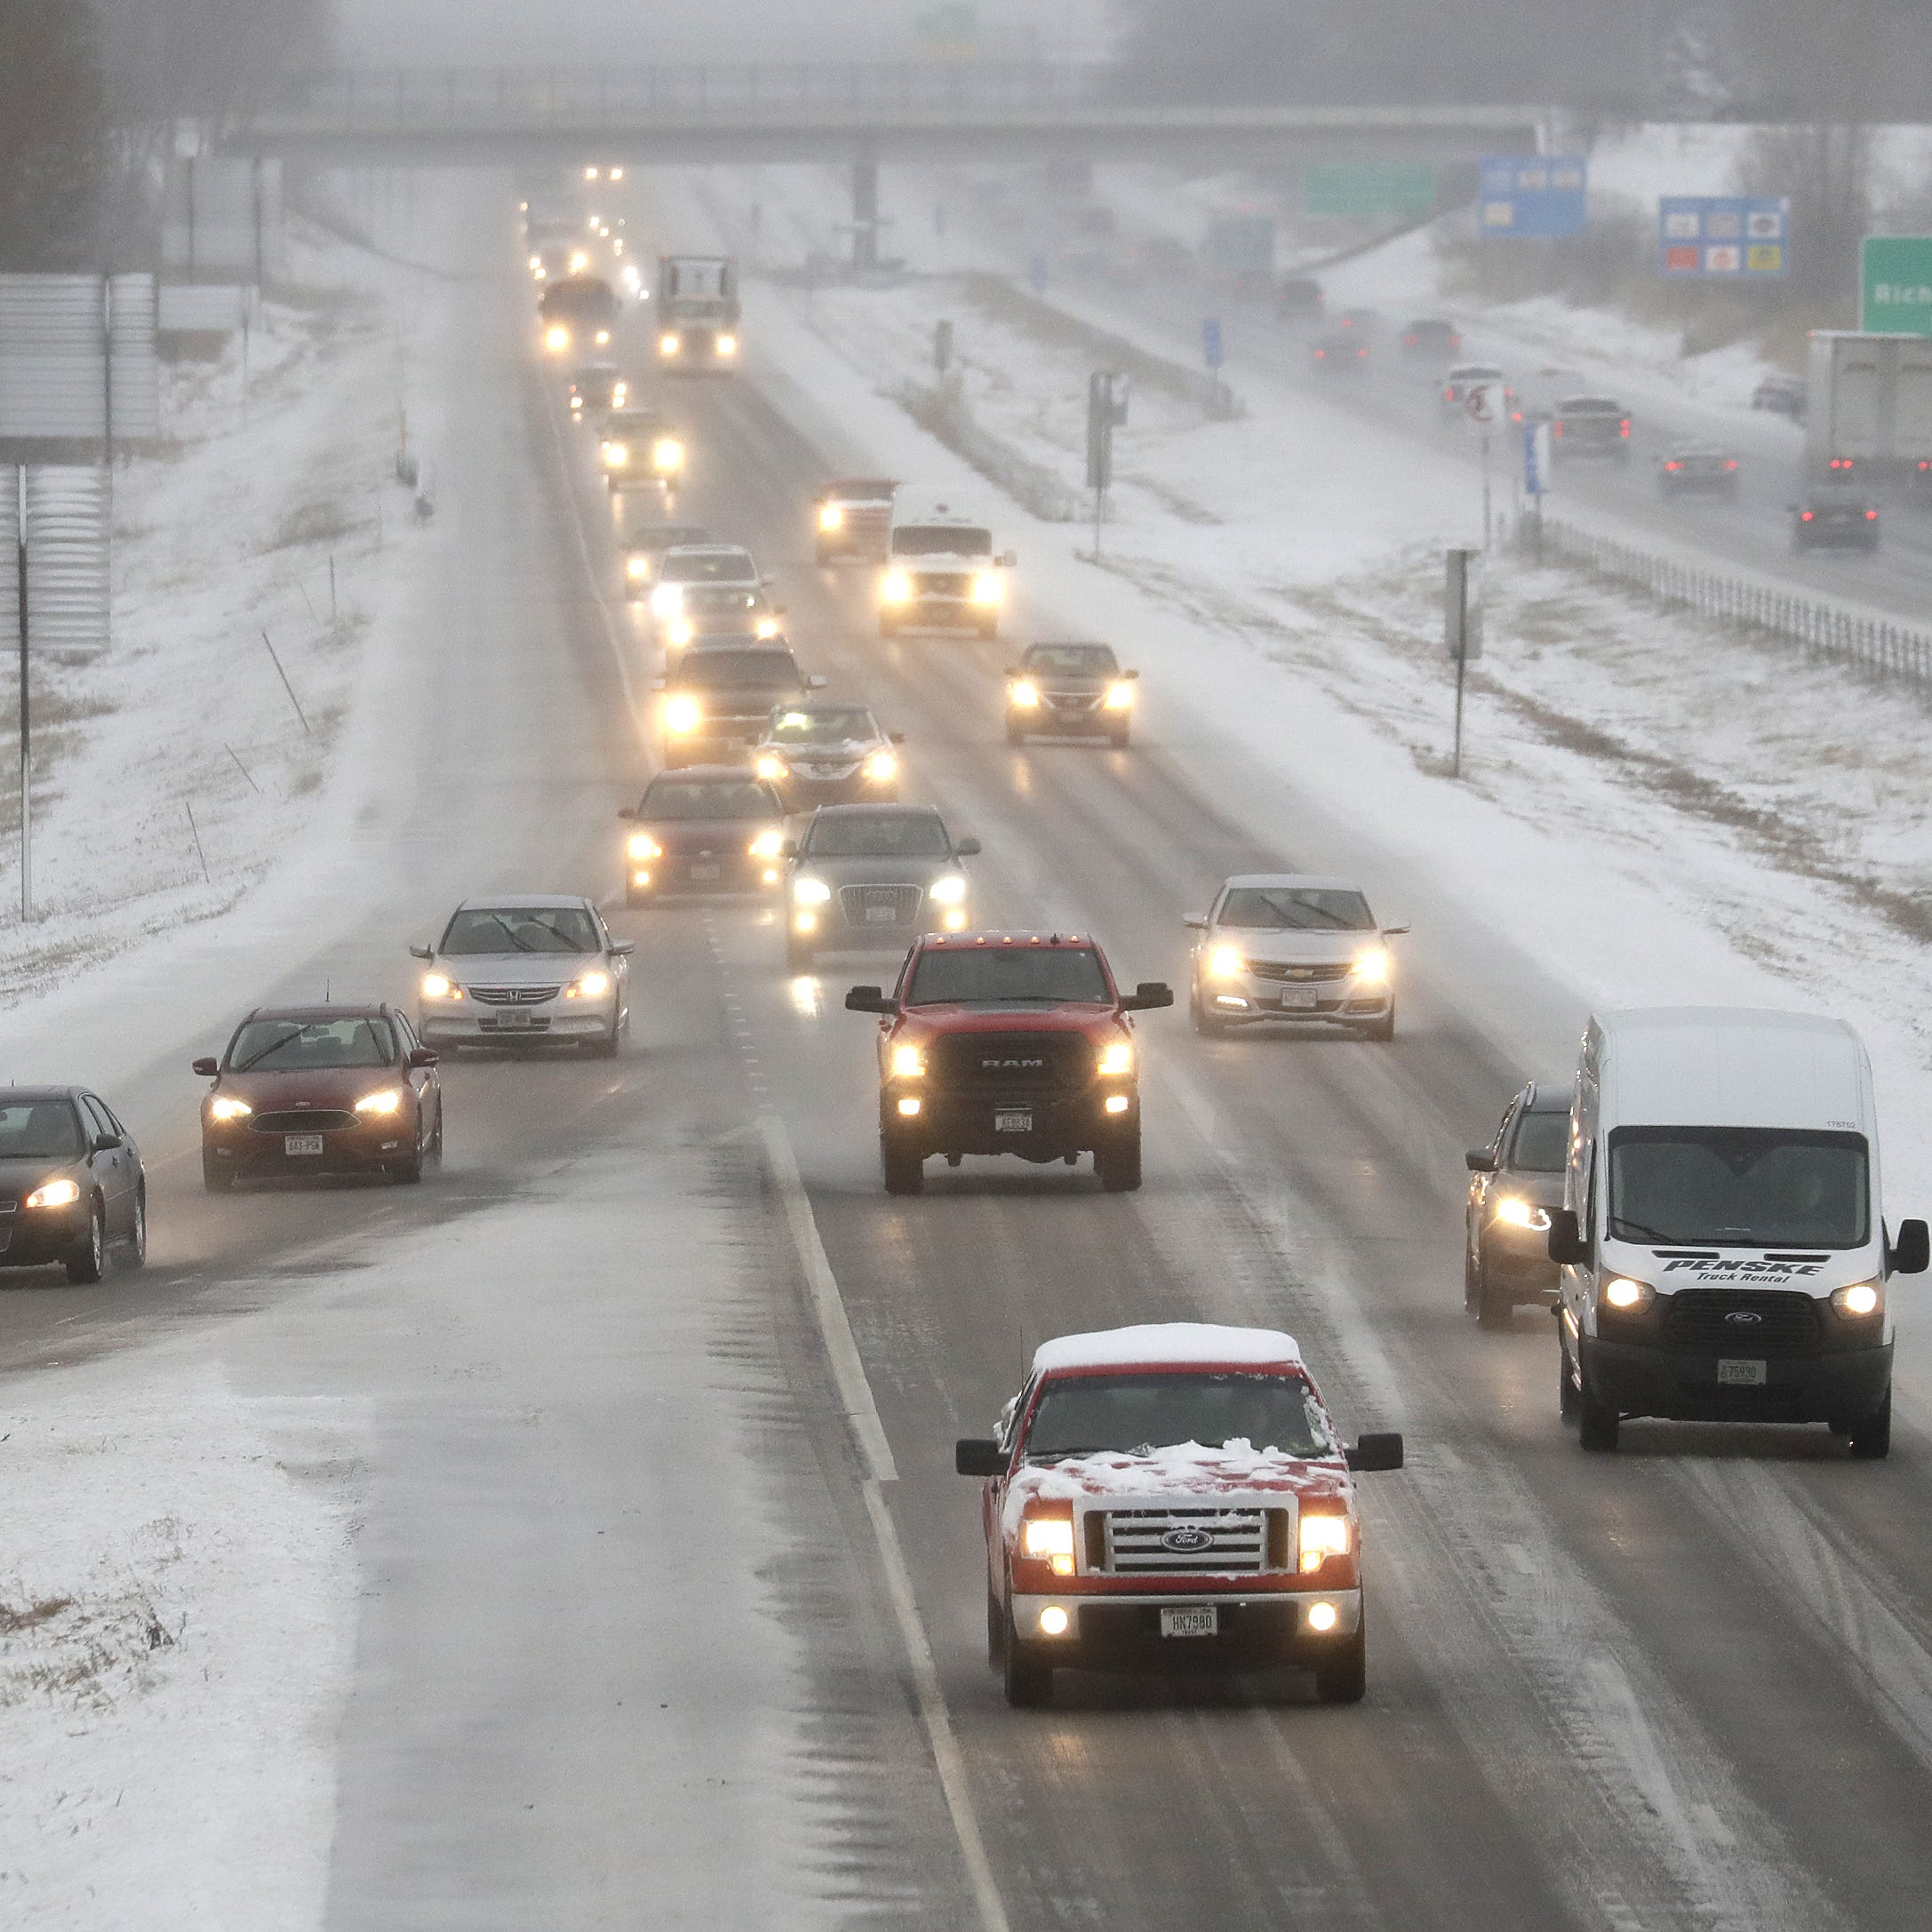 An early spring storm slammed through Wisconsin Thursday morning, but in the Milwaukee area it was mostly just a slushy mess